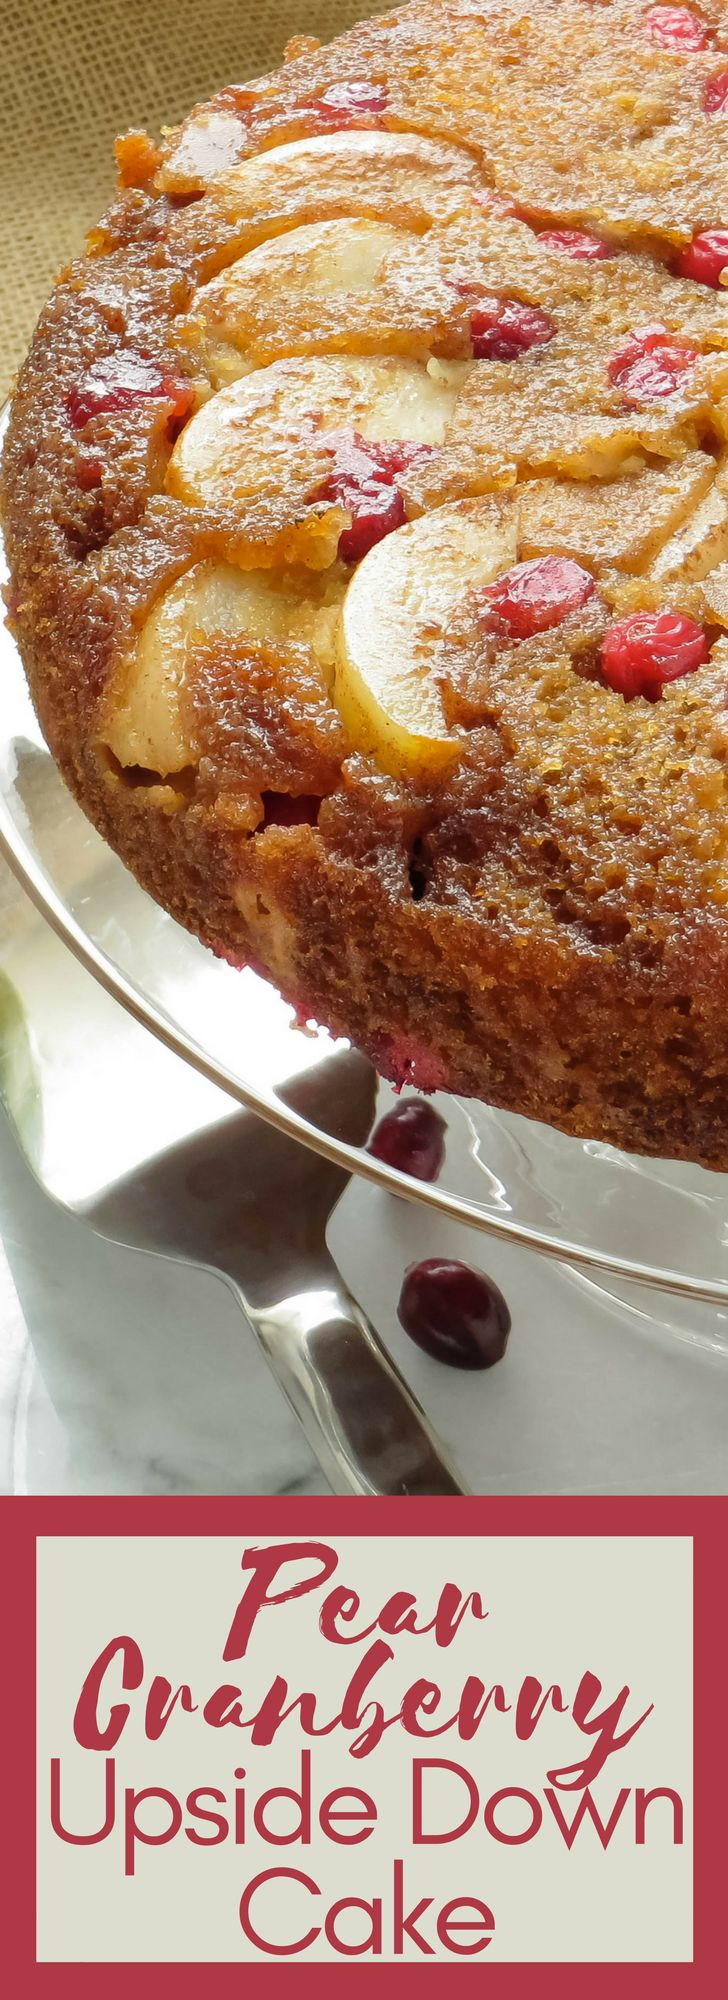 Looking for an easy fall dessert recipe? Juicy pears & tart cranberries are a twist on traditional upside down cake. Great for holidays and Thanksgiving!